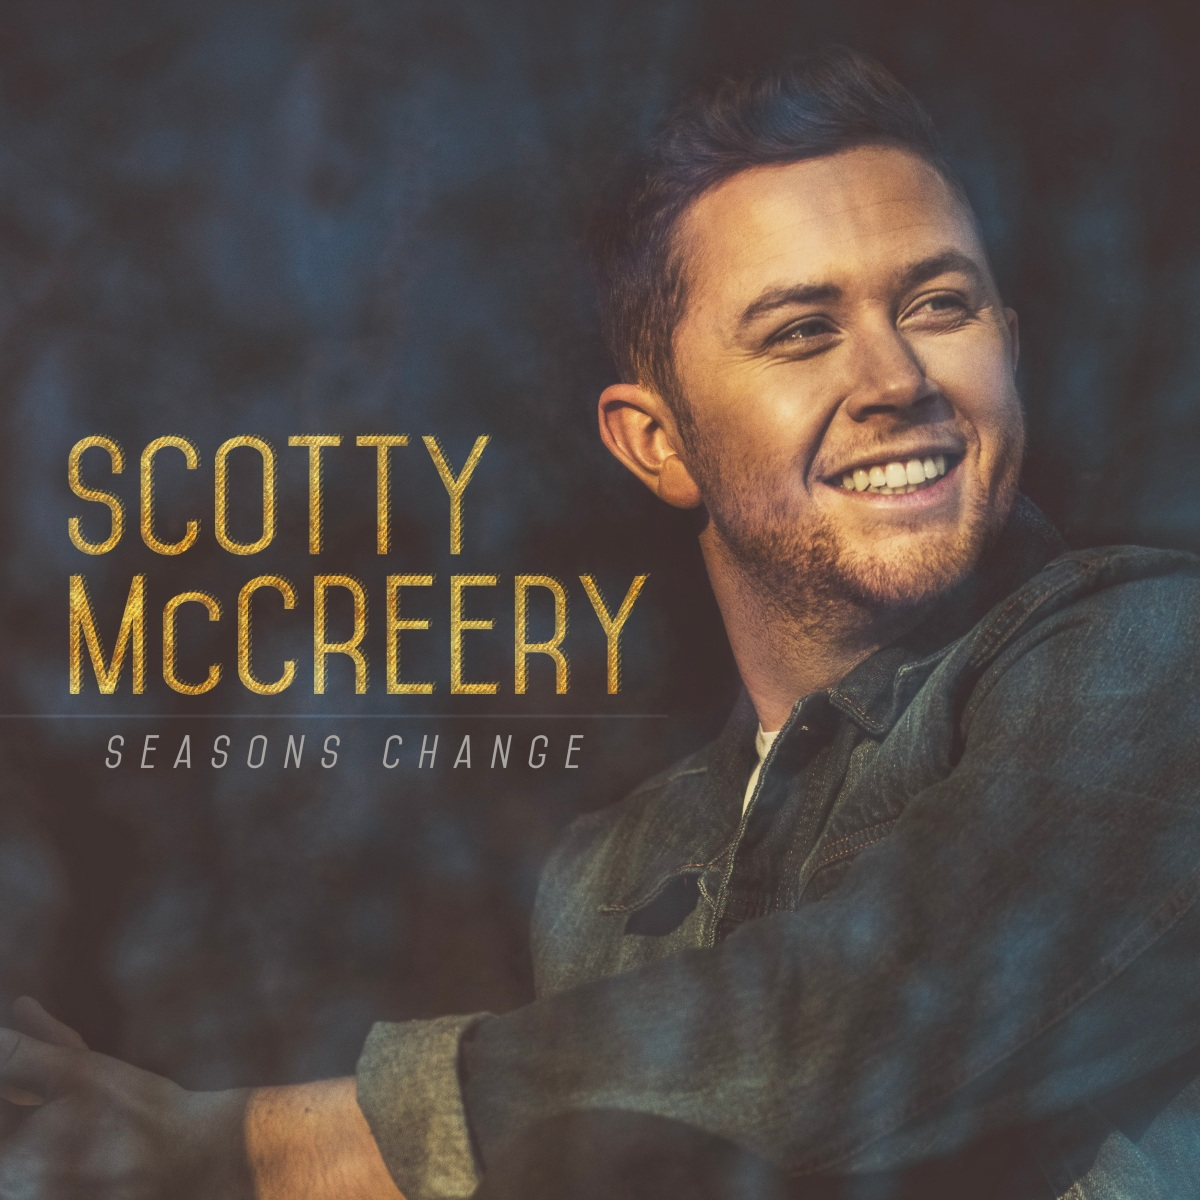 Scotty McCreery - Seasons Change - Album Review ⭐️⭐️⭐️⭐️⭐️